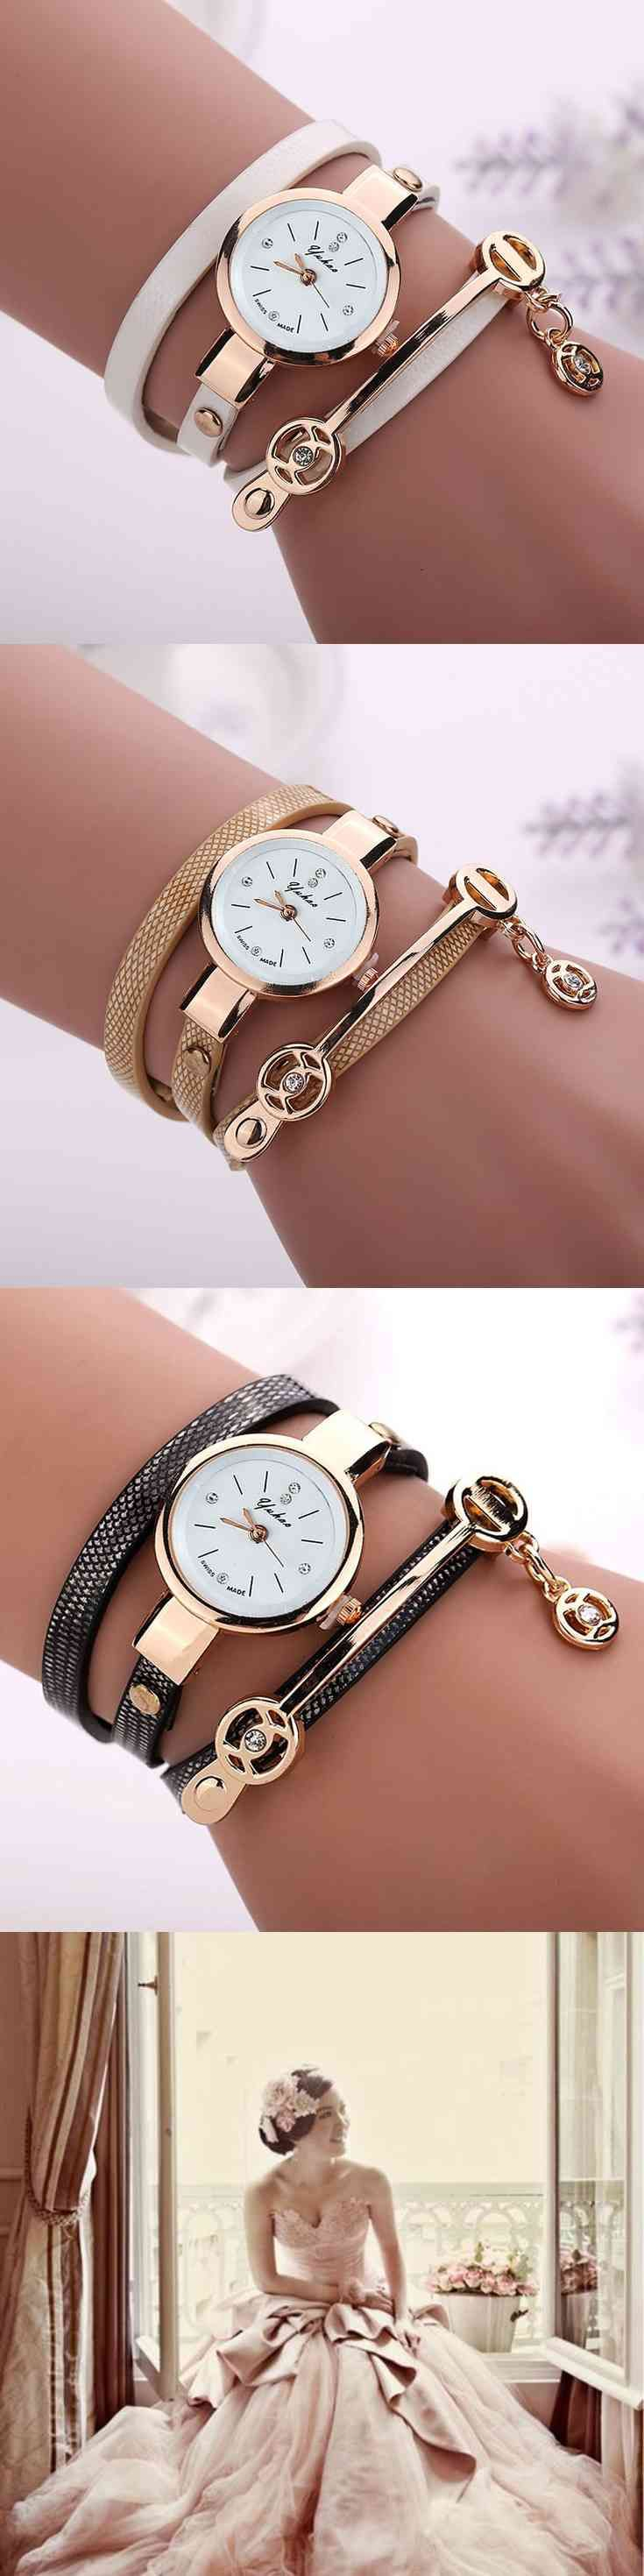 """Give a gift to your Bridesmaids a memorable and Fashionable Women Leather Stainless Steel Bracelet Quartz Dress Wrist Watch in different colors to choose Gift Fashion Luxury Bracelet Watch Wristwatch   Watch band material: PU  Leather   Case material: Alloy   Total length: 55cm/ 21.66""""(approx.)   Belt Width: 0.6cm/0.24""""(approx.)   Watch case Size: (...) (via pushapin.com)"""